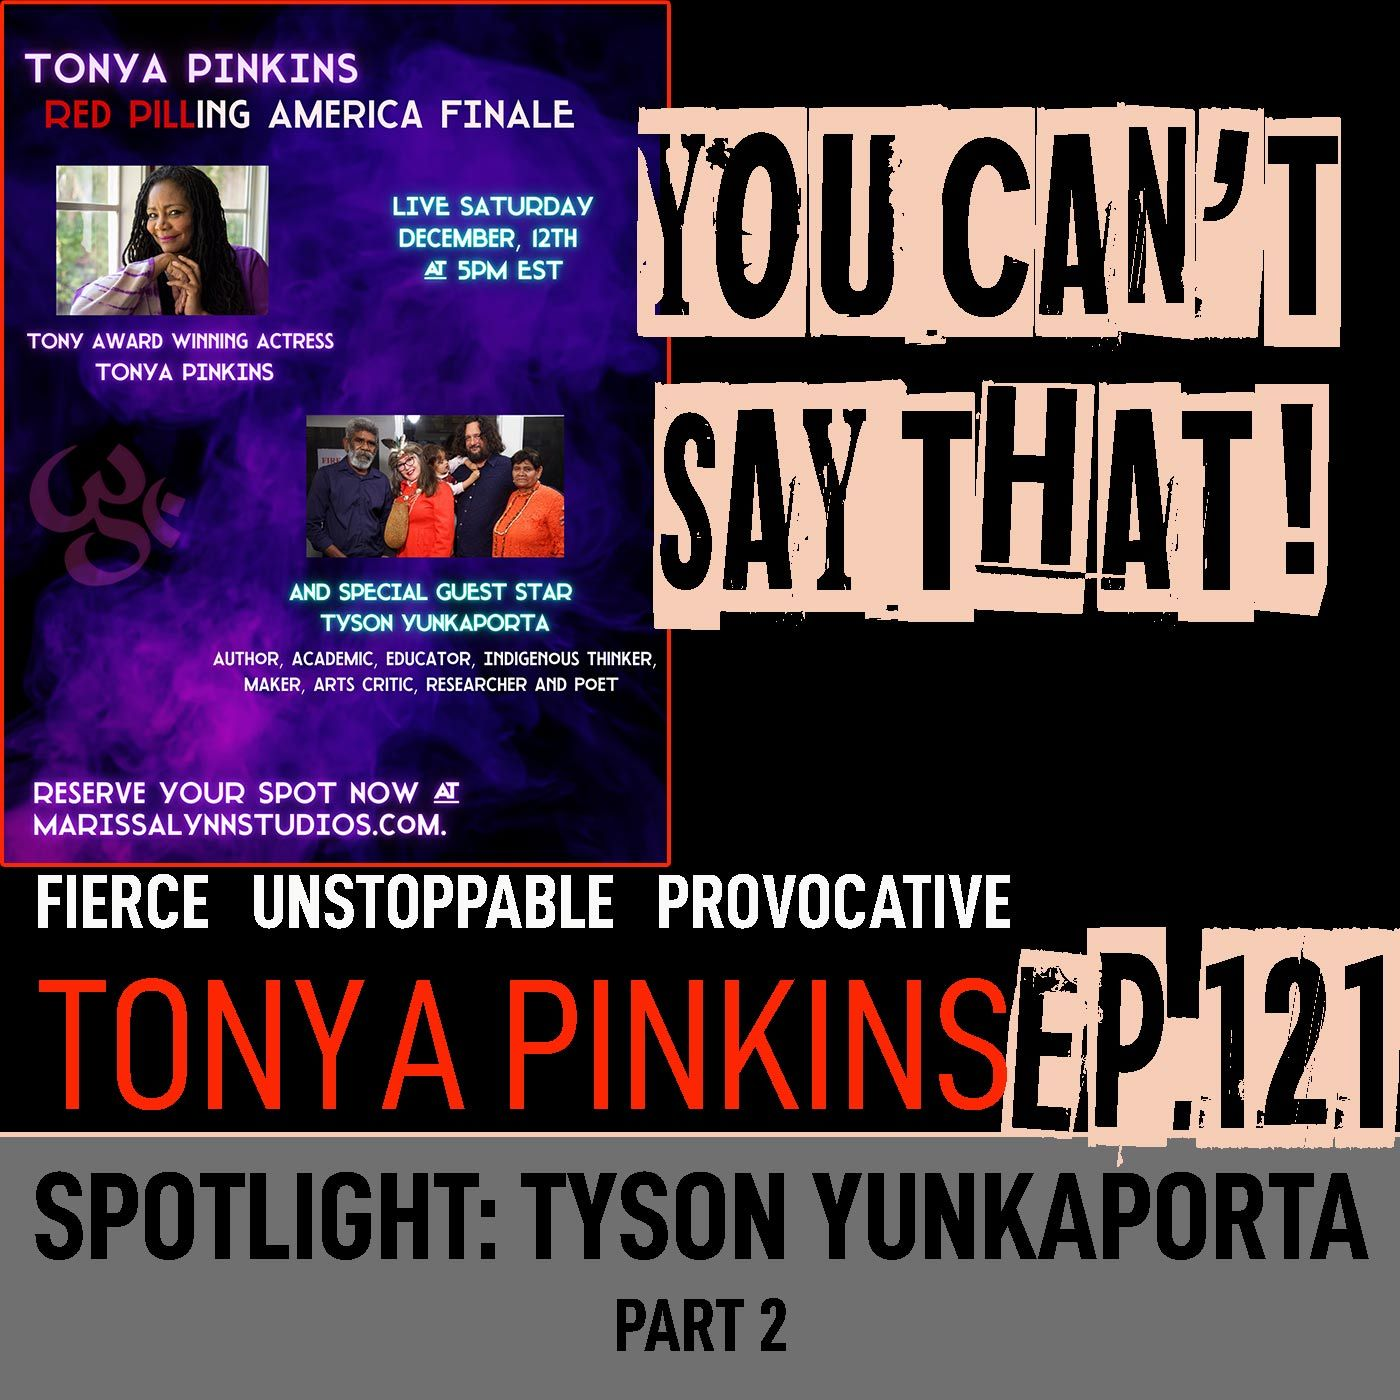 Ep121 - SPOTLIGHT: Red Pilling America with with Tyson Yunkaporta (Part 2)